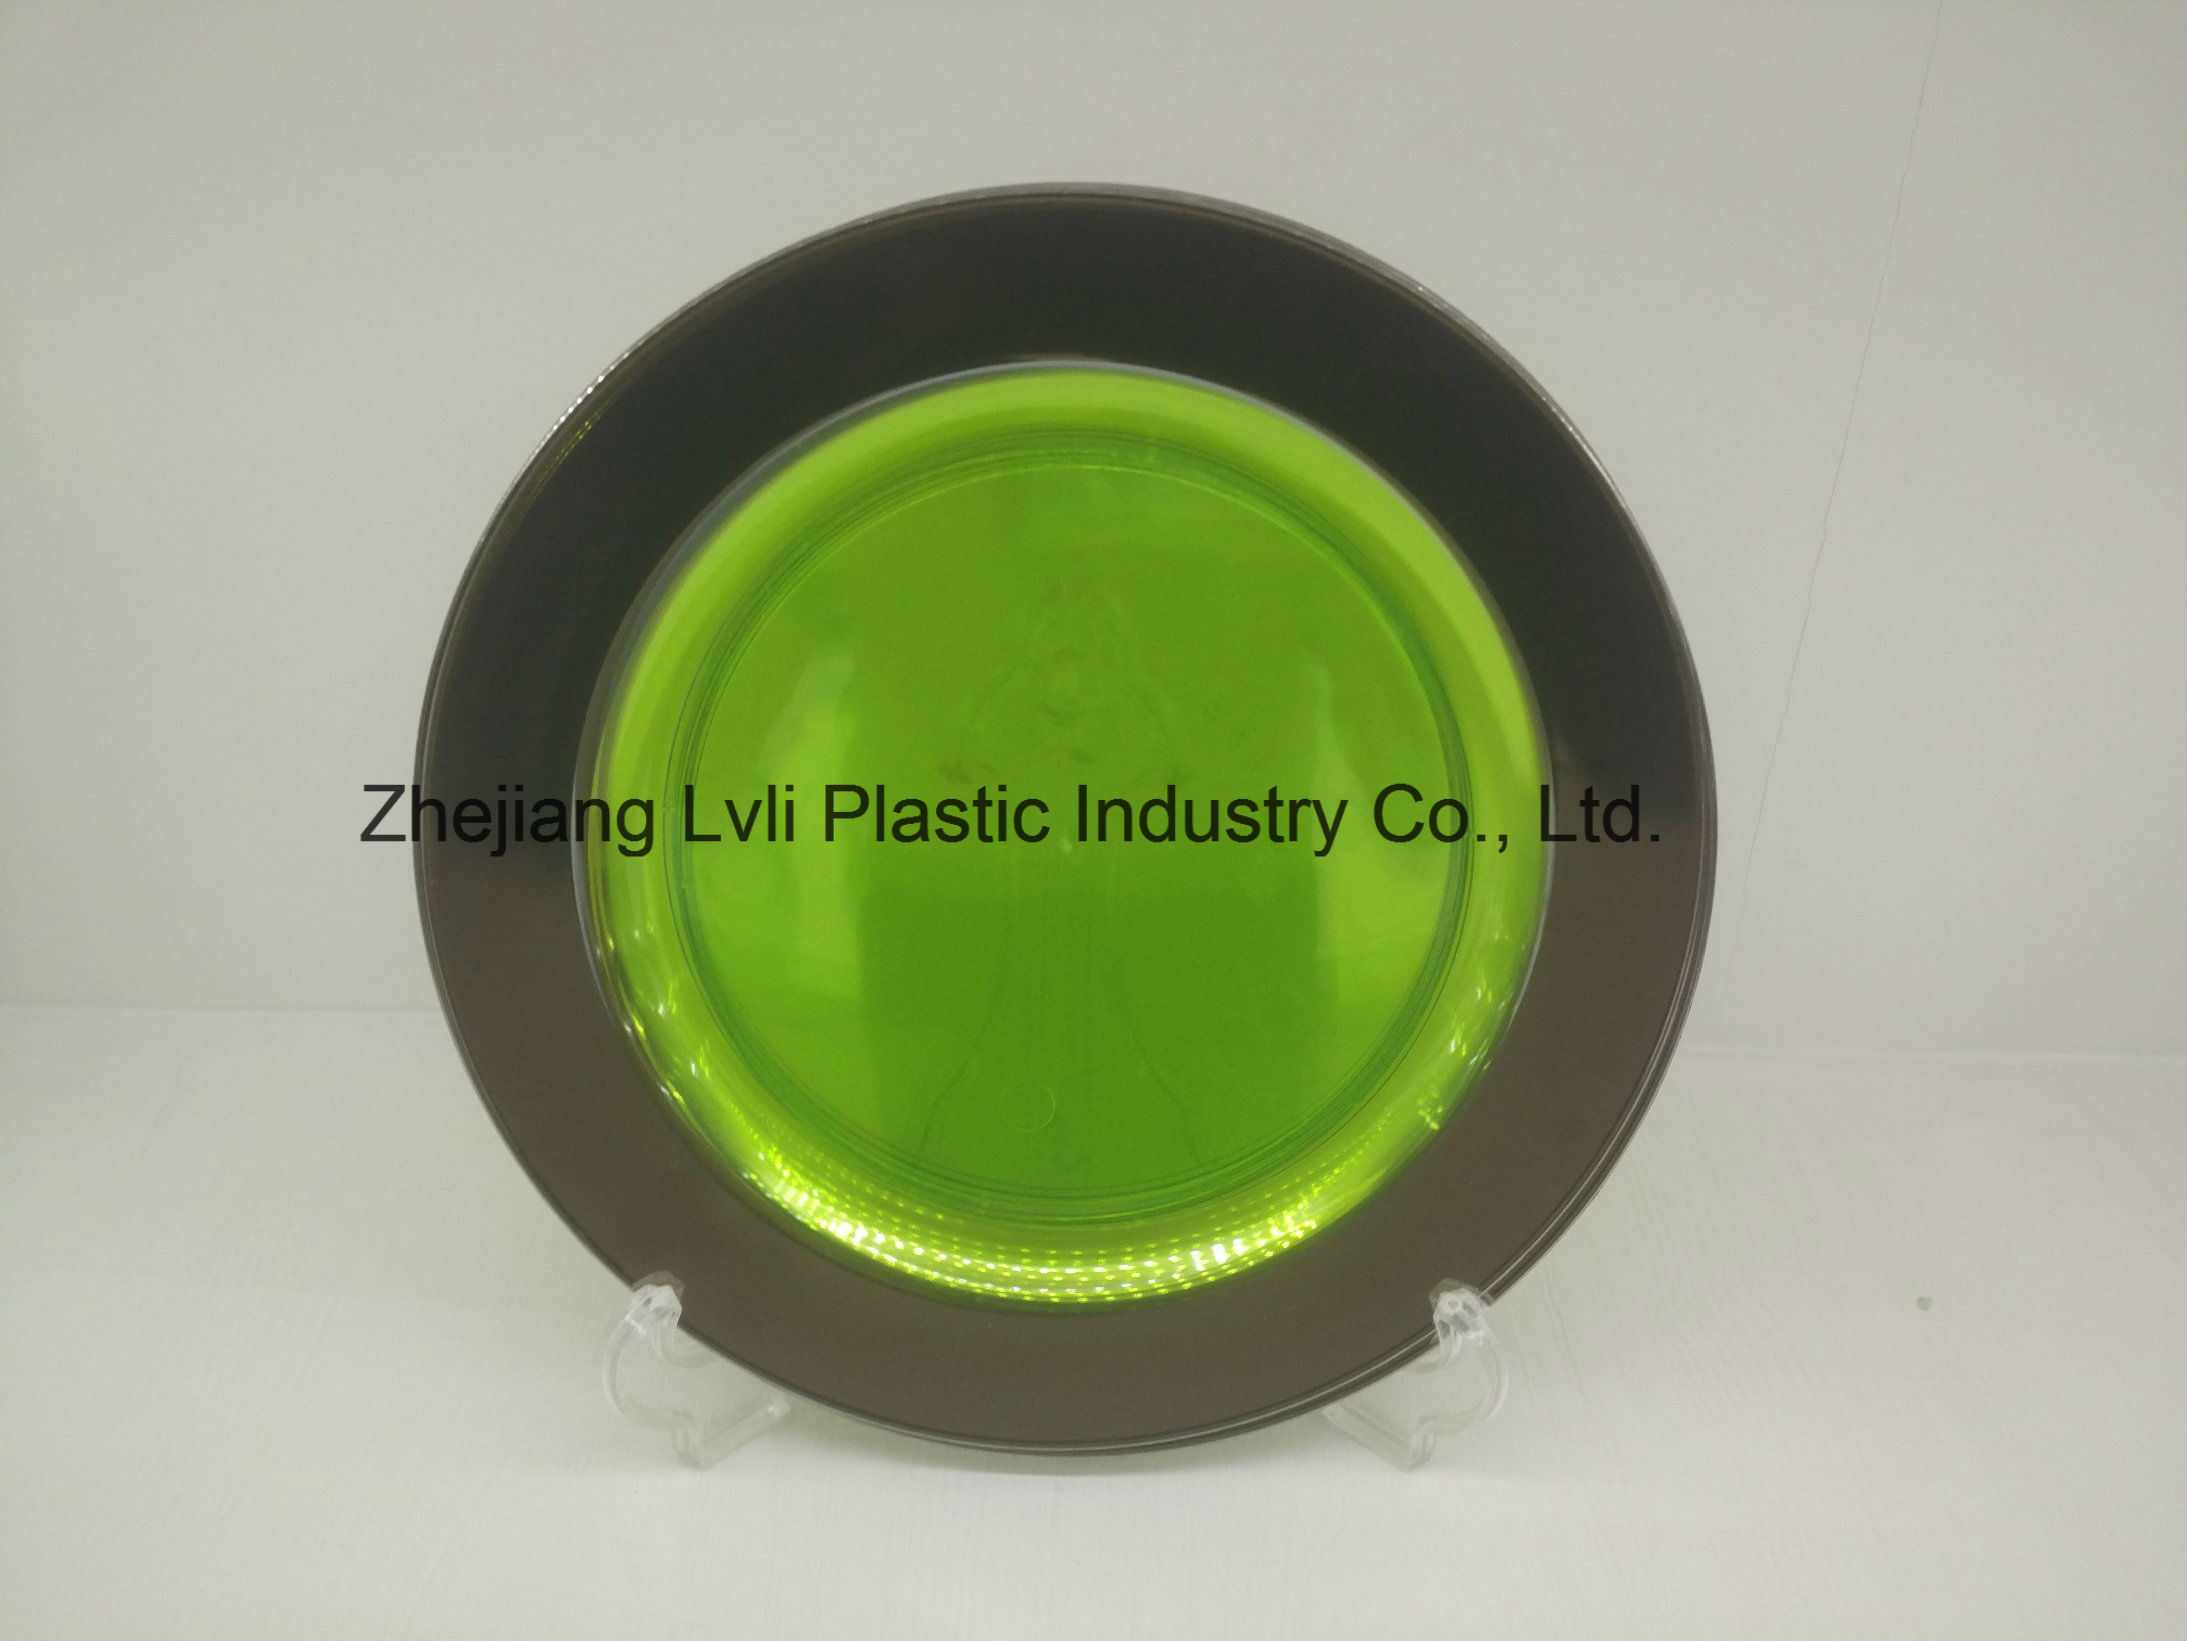 Plastic Plate, Disposable, Tableware, Tray, Dish, Colorful, PS, SGS, Silver Rim Plate, PA-03